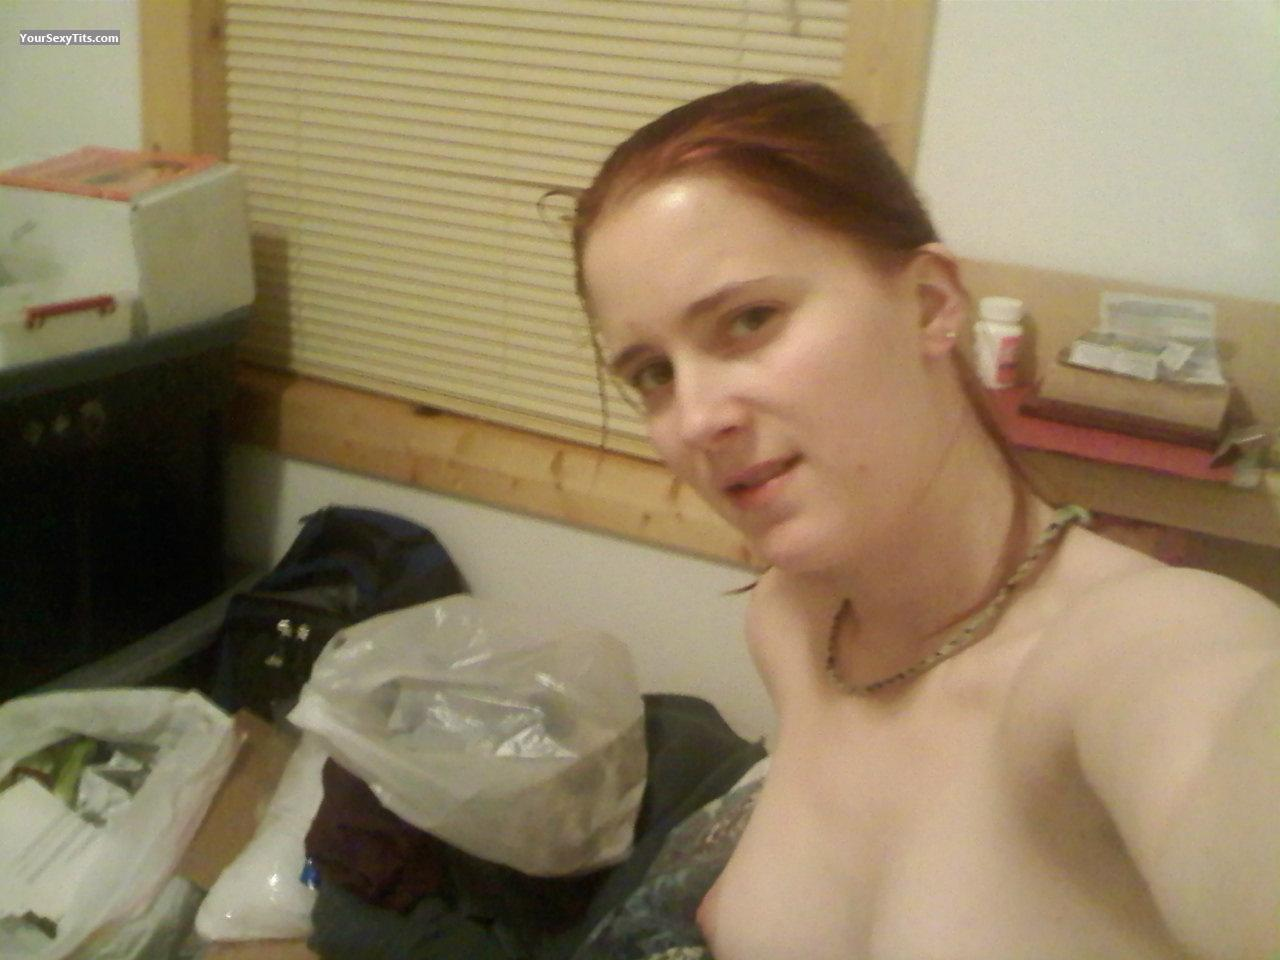 My Medium Tits Topless Selfie by Debra